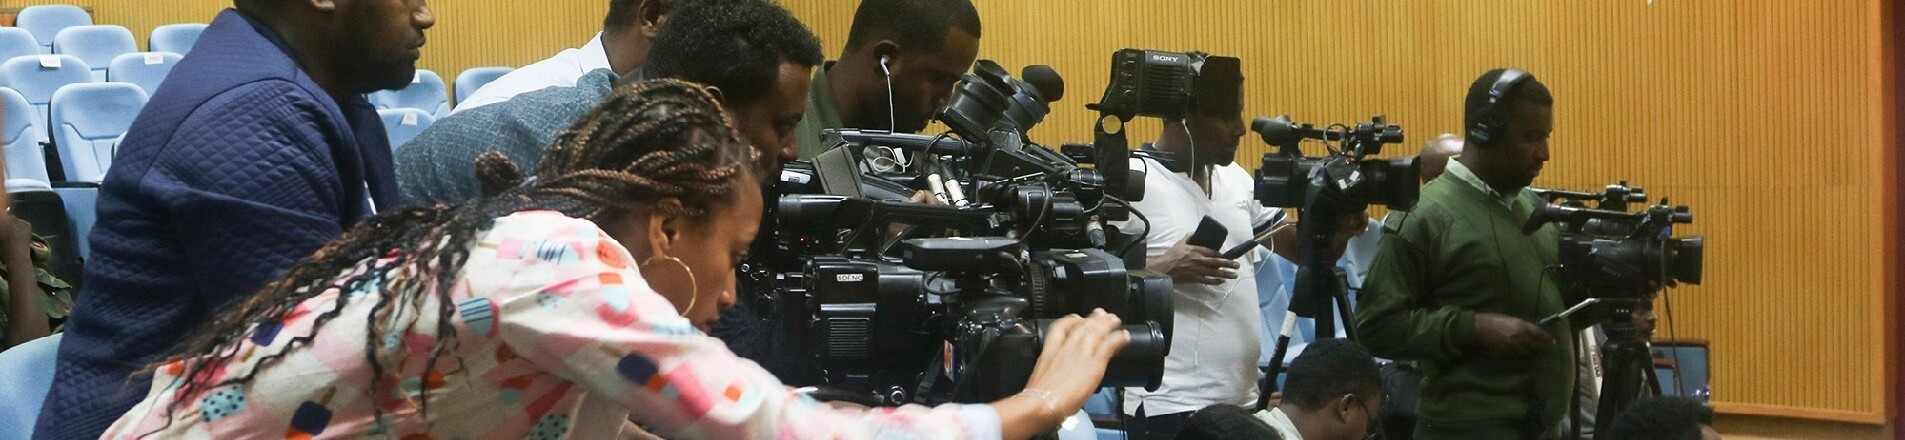 What's it like to work in media | Media Communications